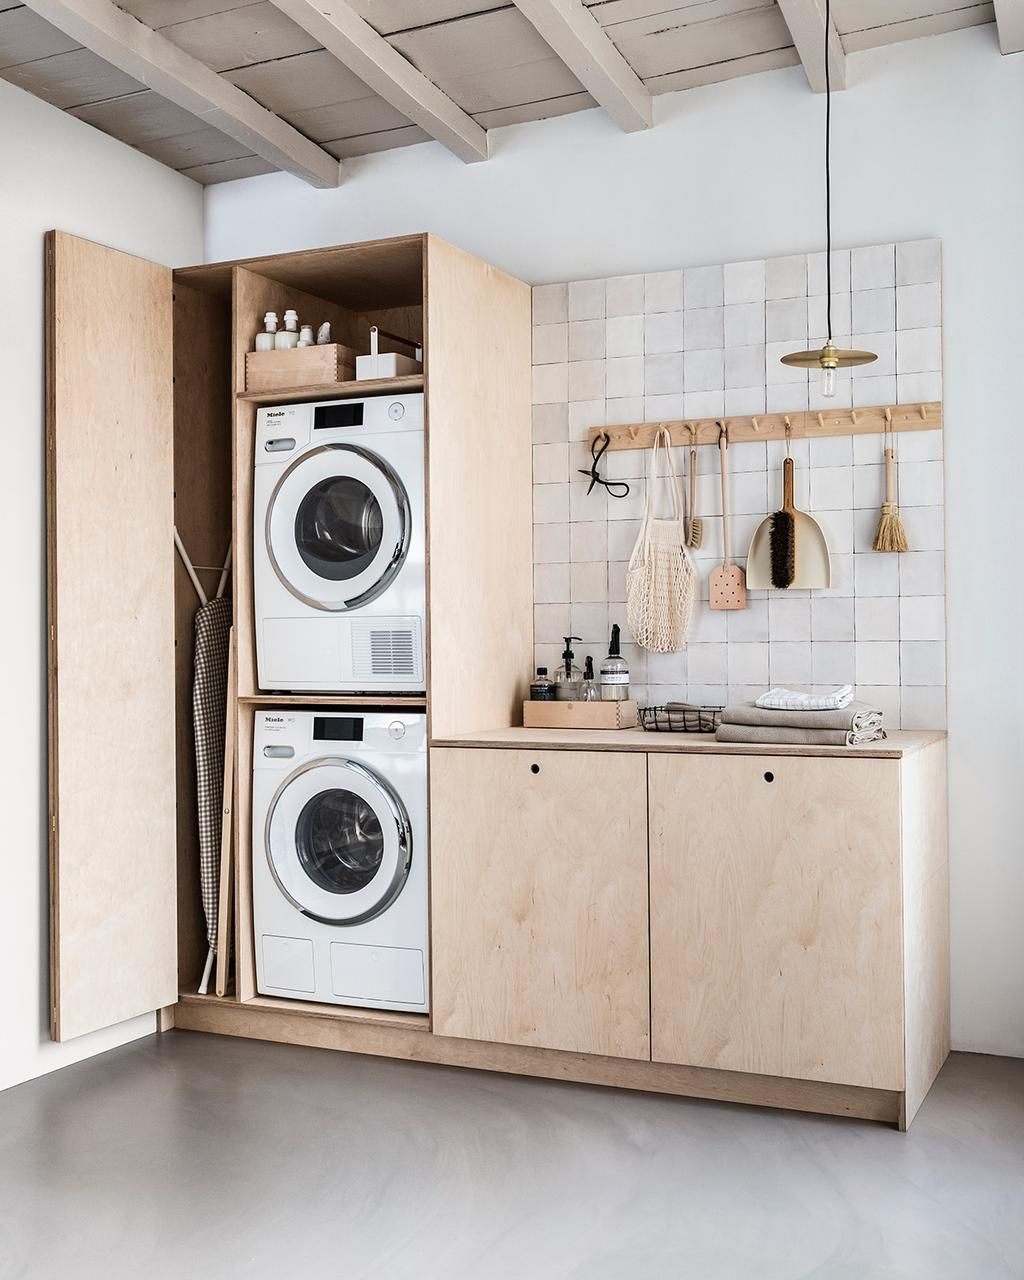 Diy The Ultimate Laundry Cabinet This Is How You Make It Step By